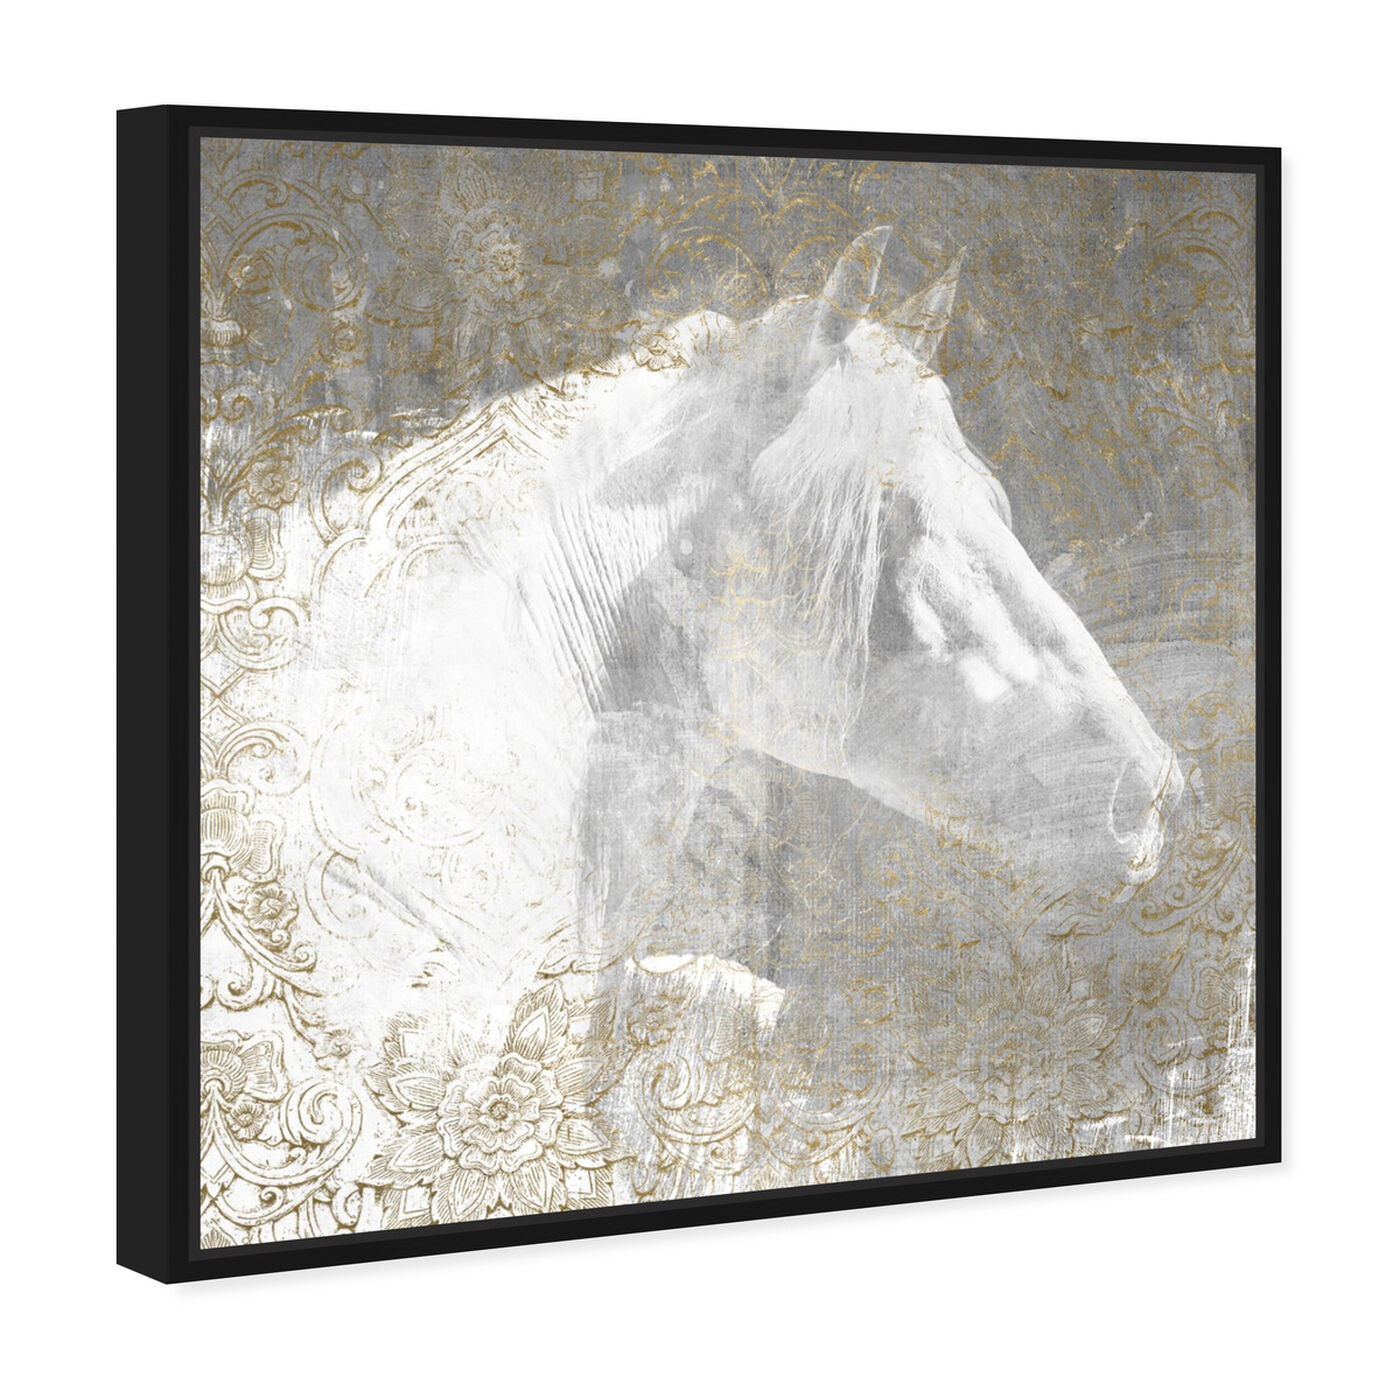 Angled view of Lone Blanc Horse featuring animals and farm animals art.